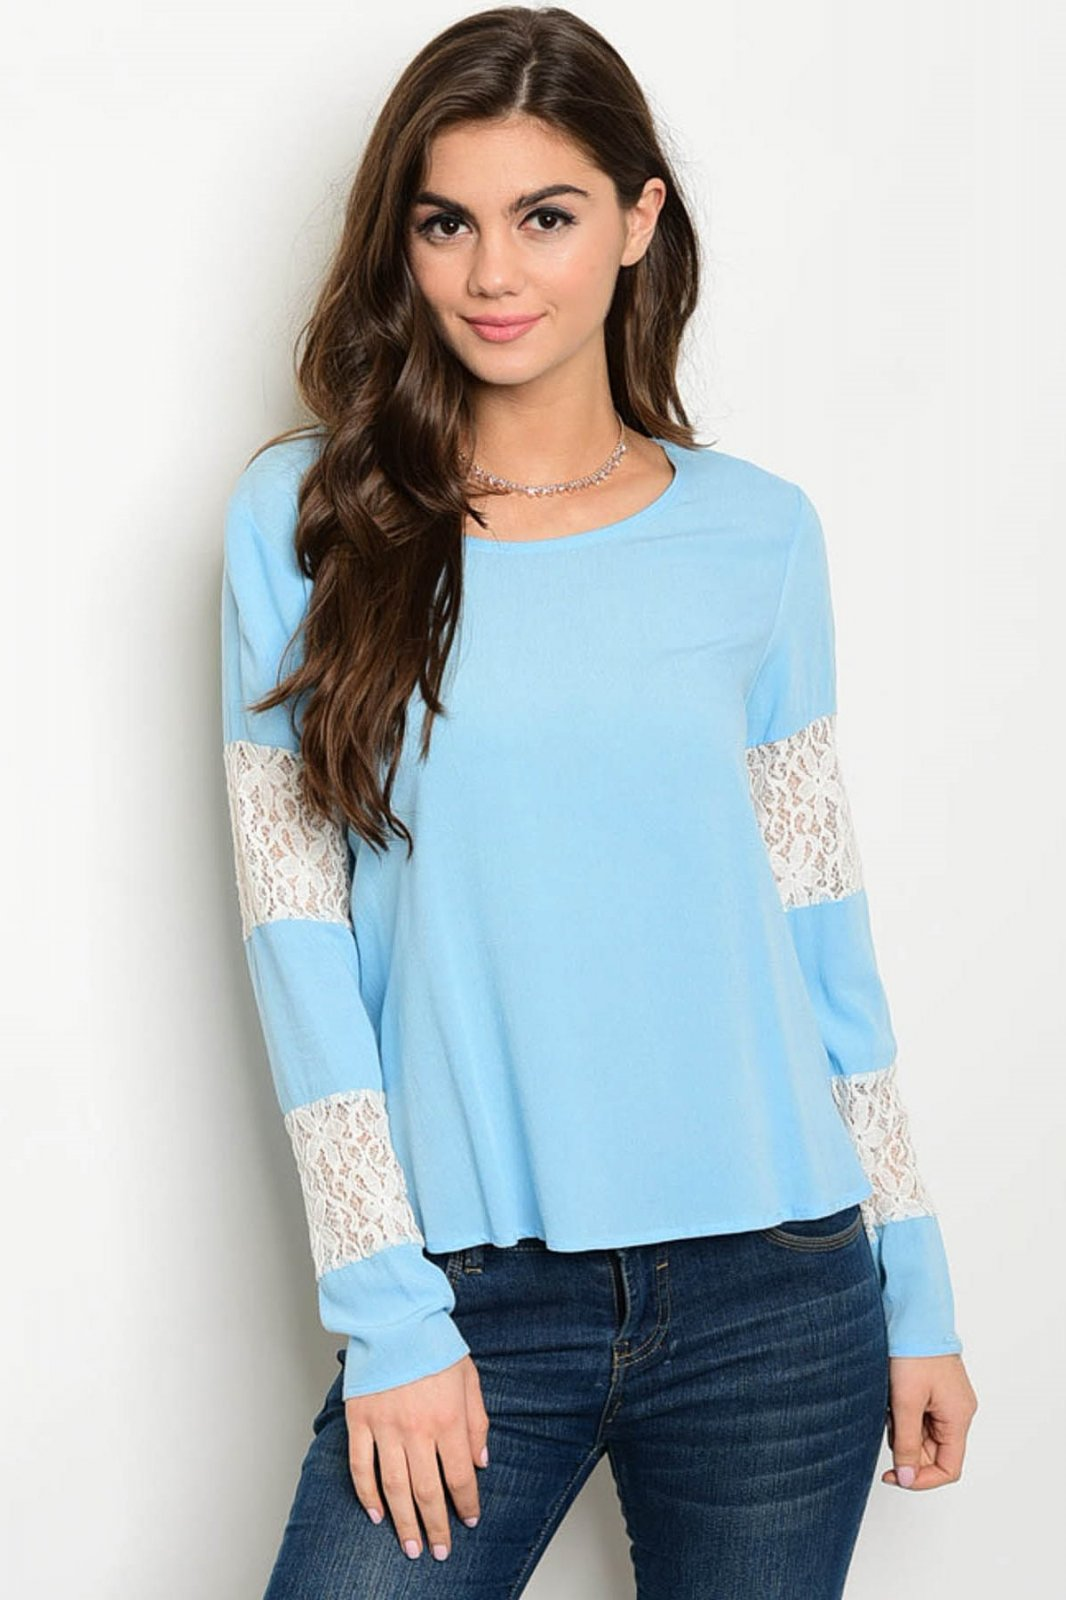 Long Sleeve Light Blue Top With Lace Detail